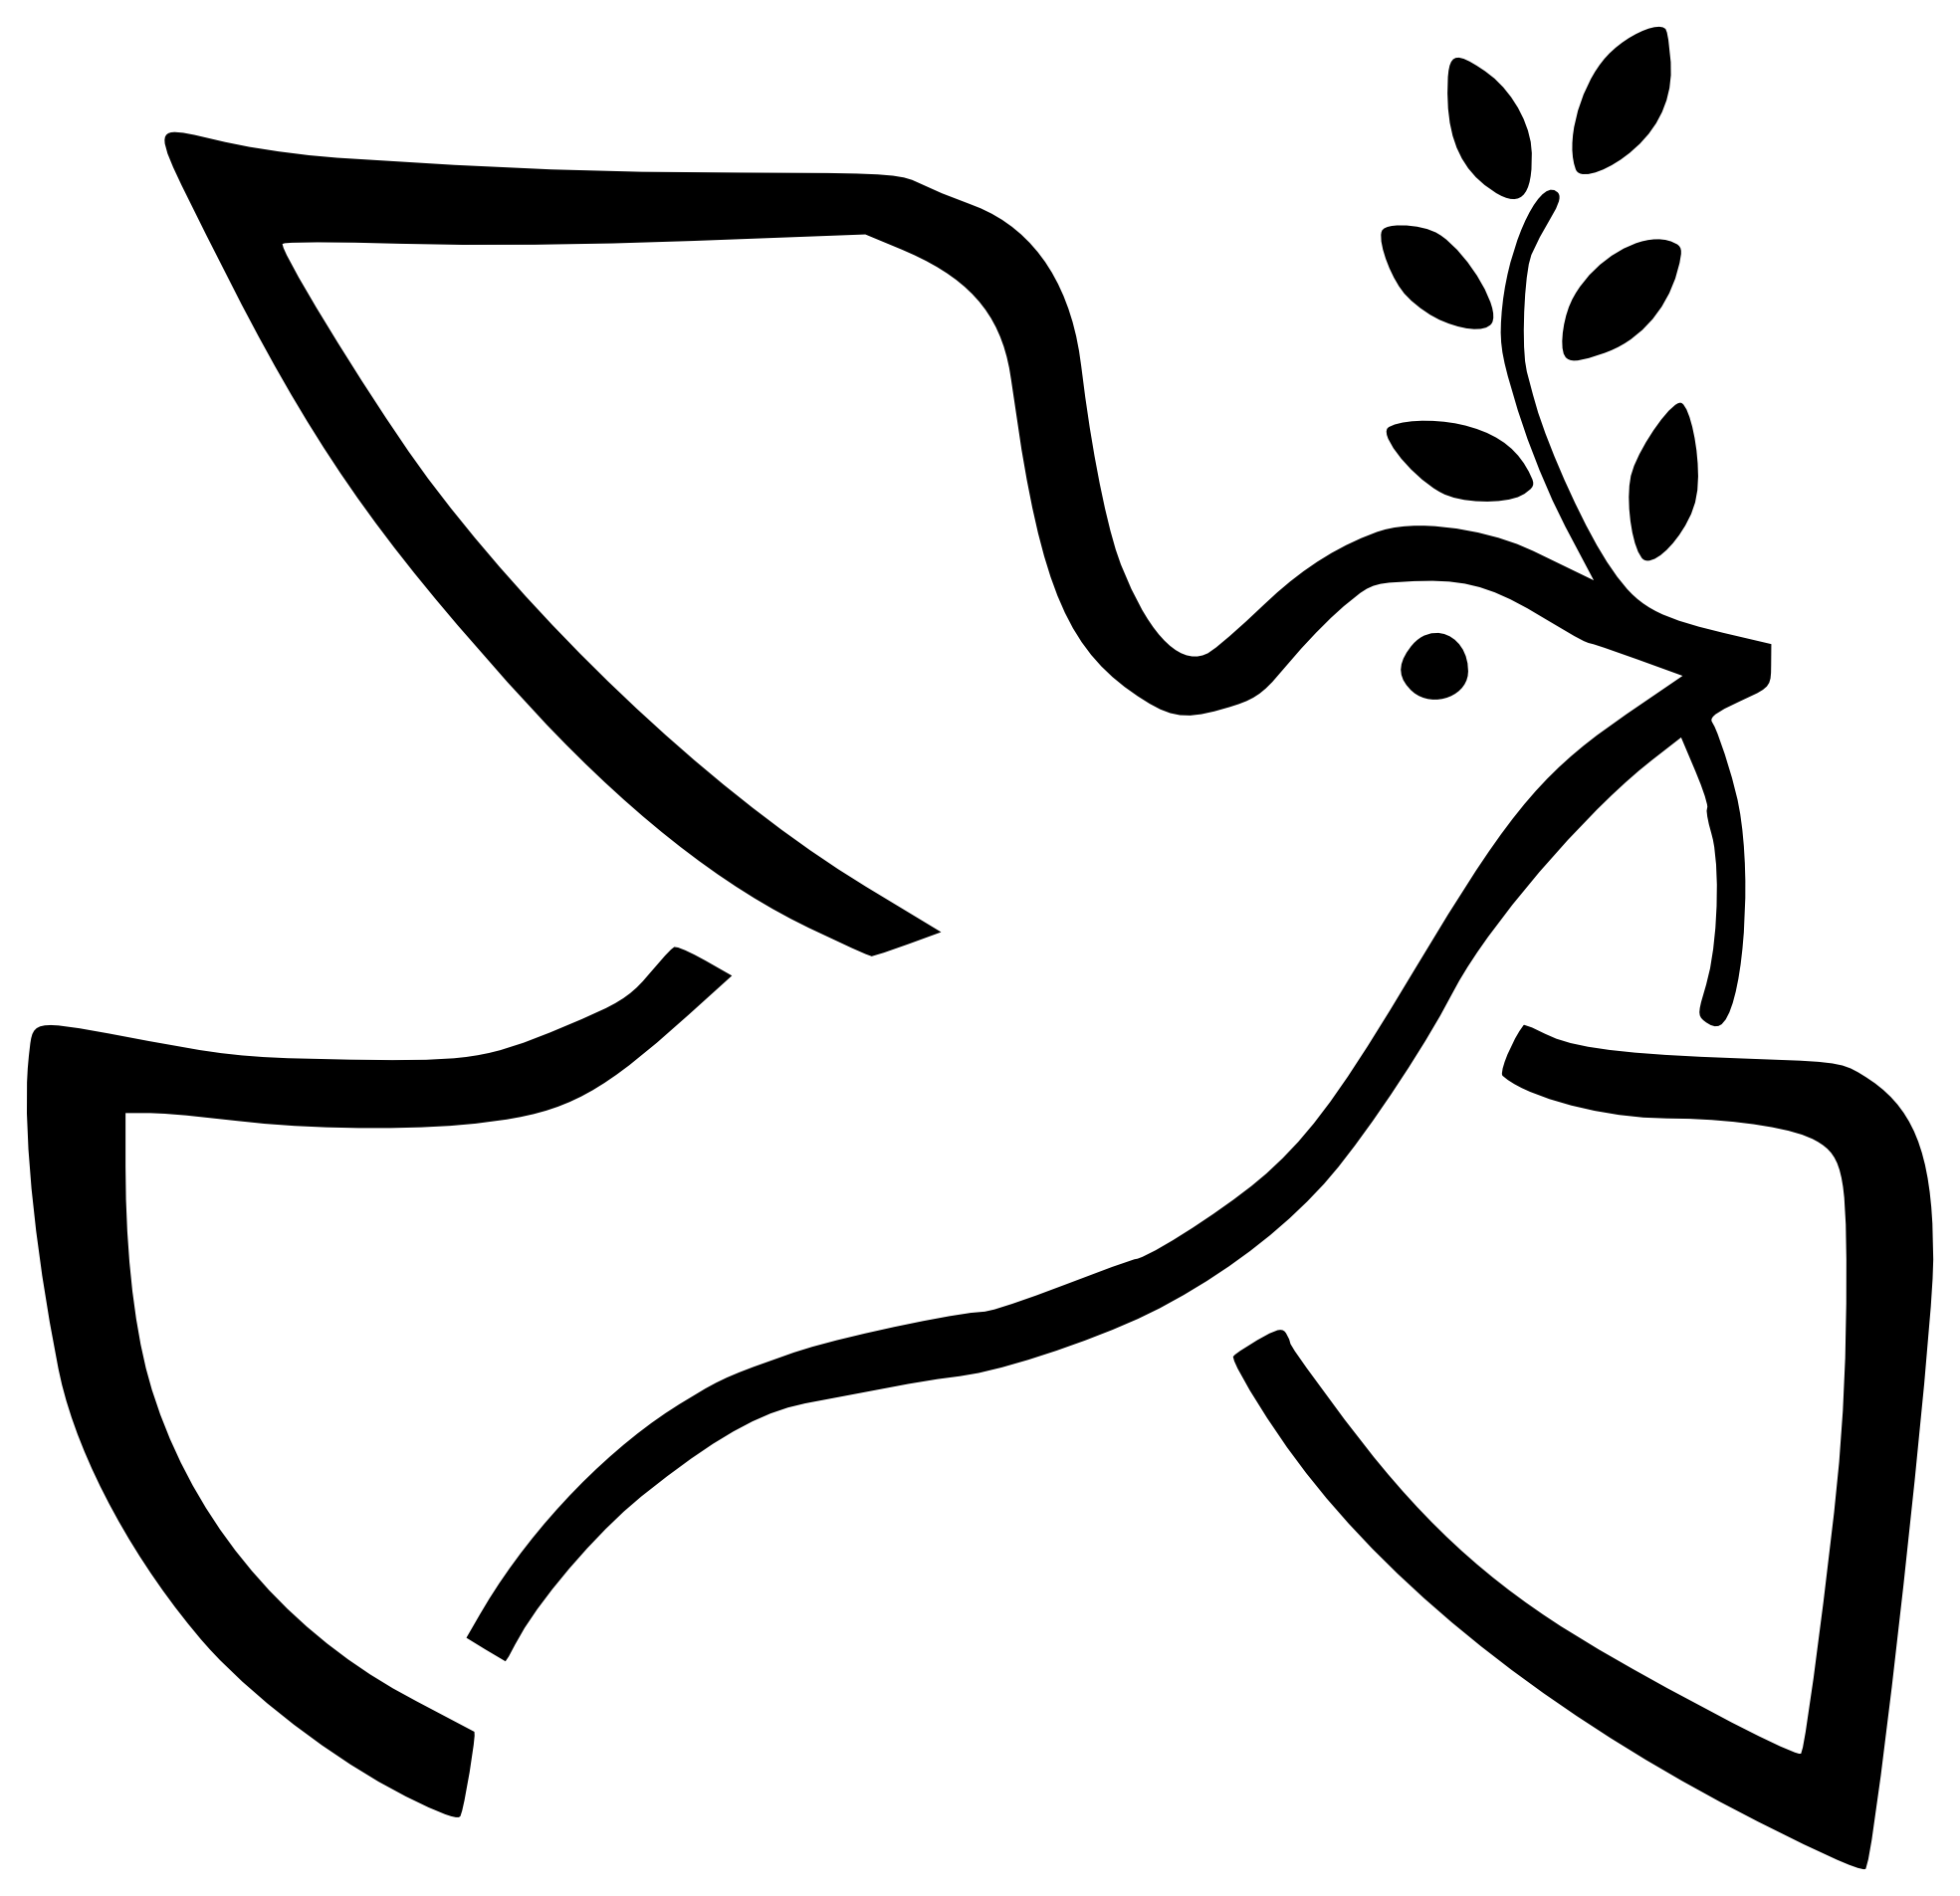 Fly clipart kid. Peace dove sunday school